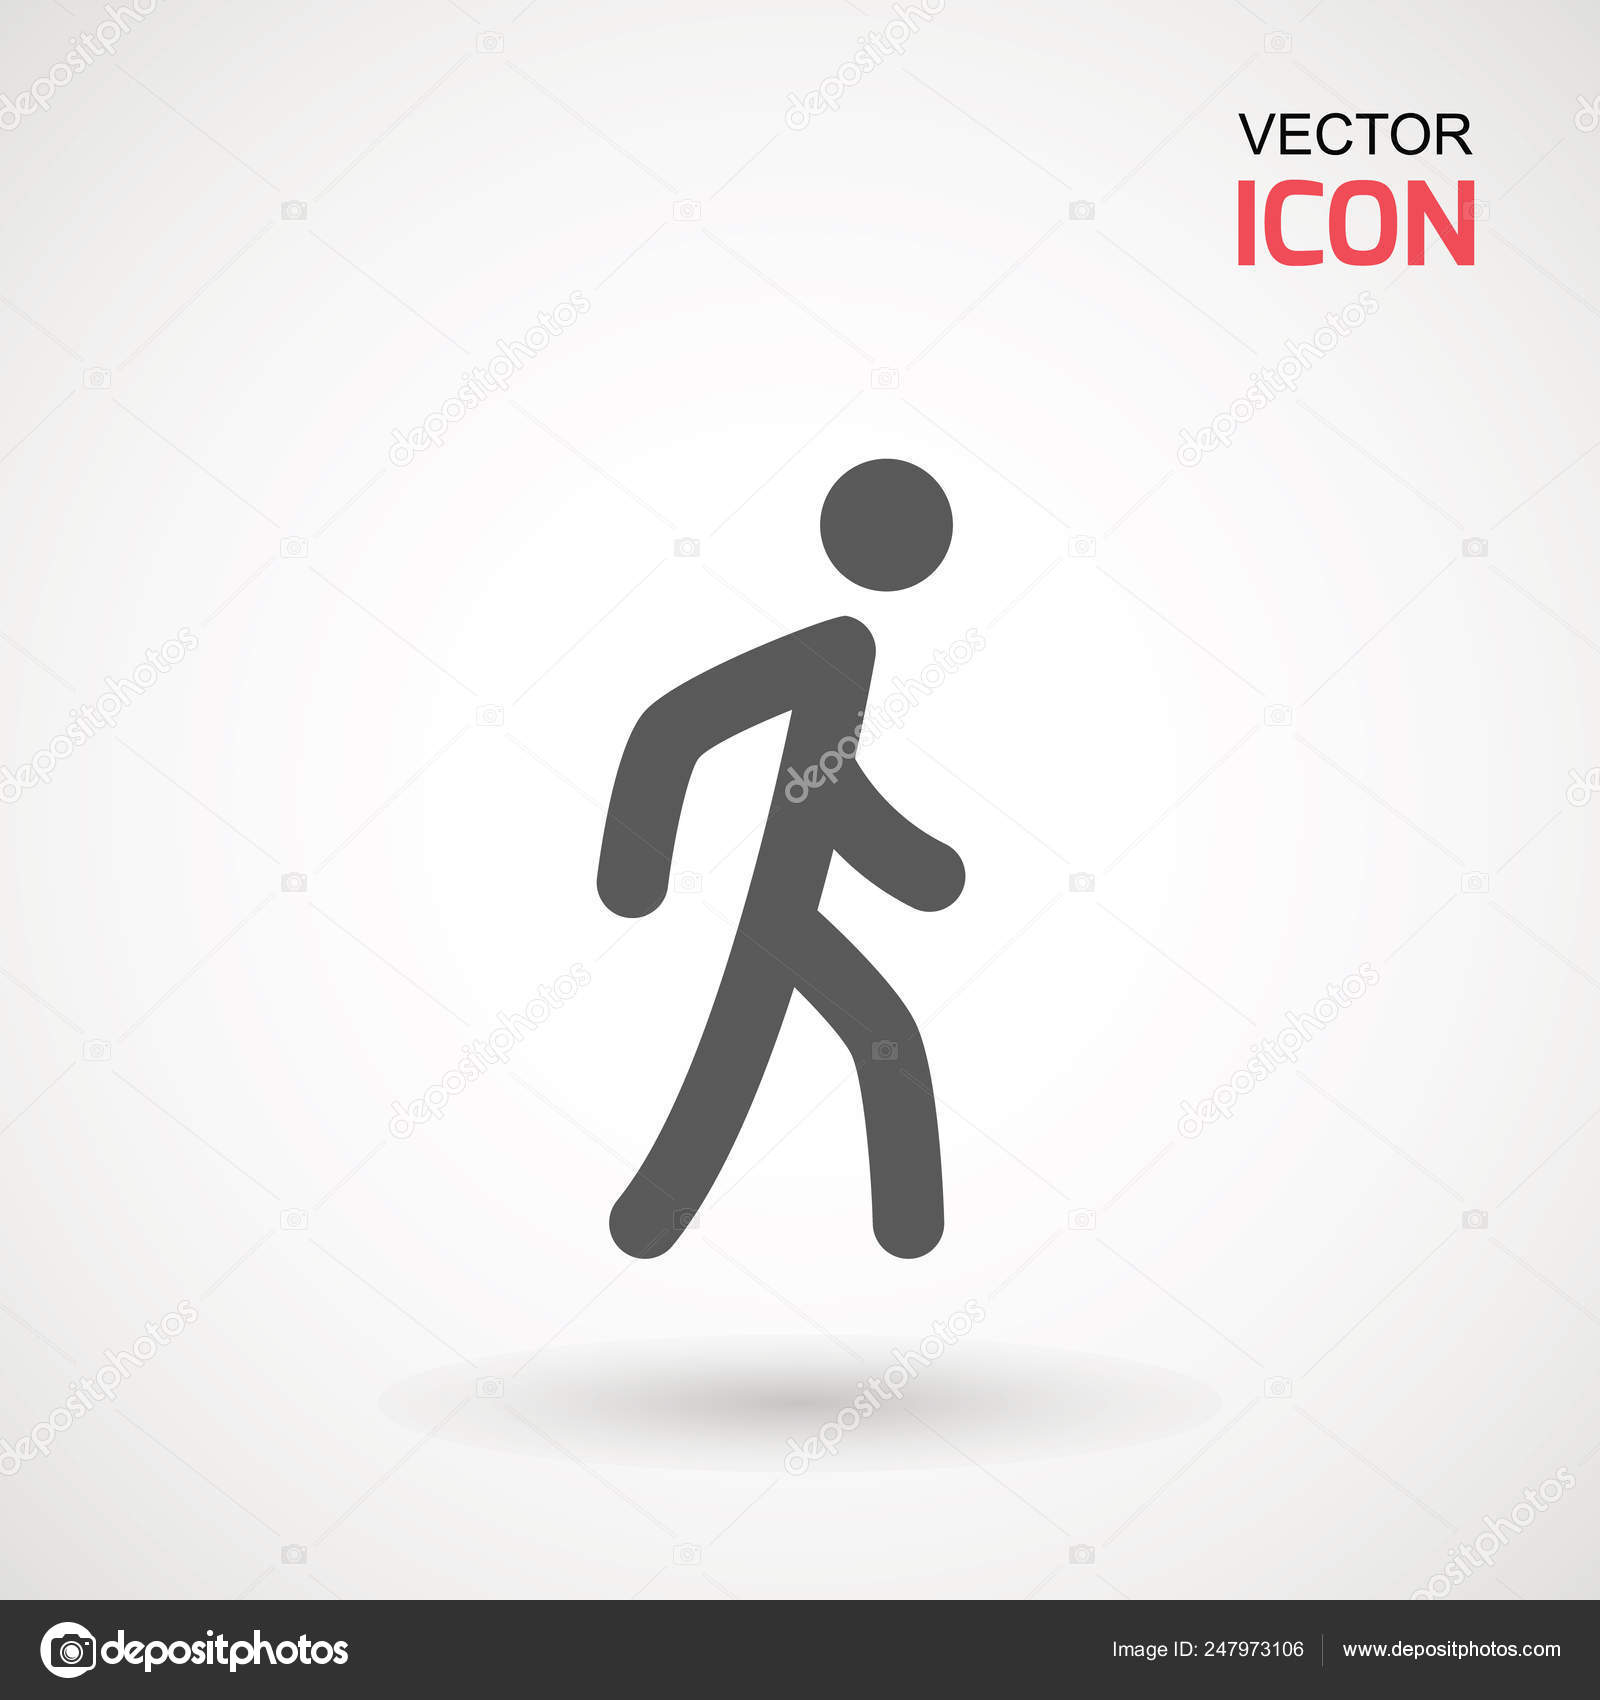 man walk icon walking man vector icon people walk sign illustration pedestrian vector sign symbol on white background stock vector c aygunaliyeva 247973106 man walk icon walking man vector icon people walk sign illustration pedestrian vector sign symbol on white background stock vector c aygunaliyeva 247973106